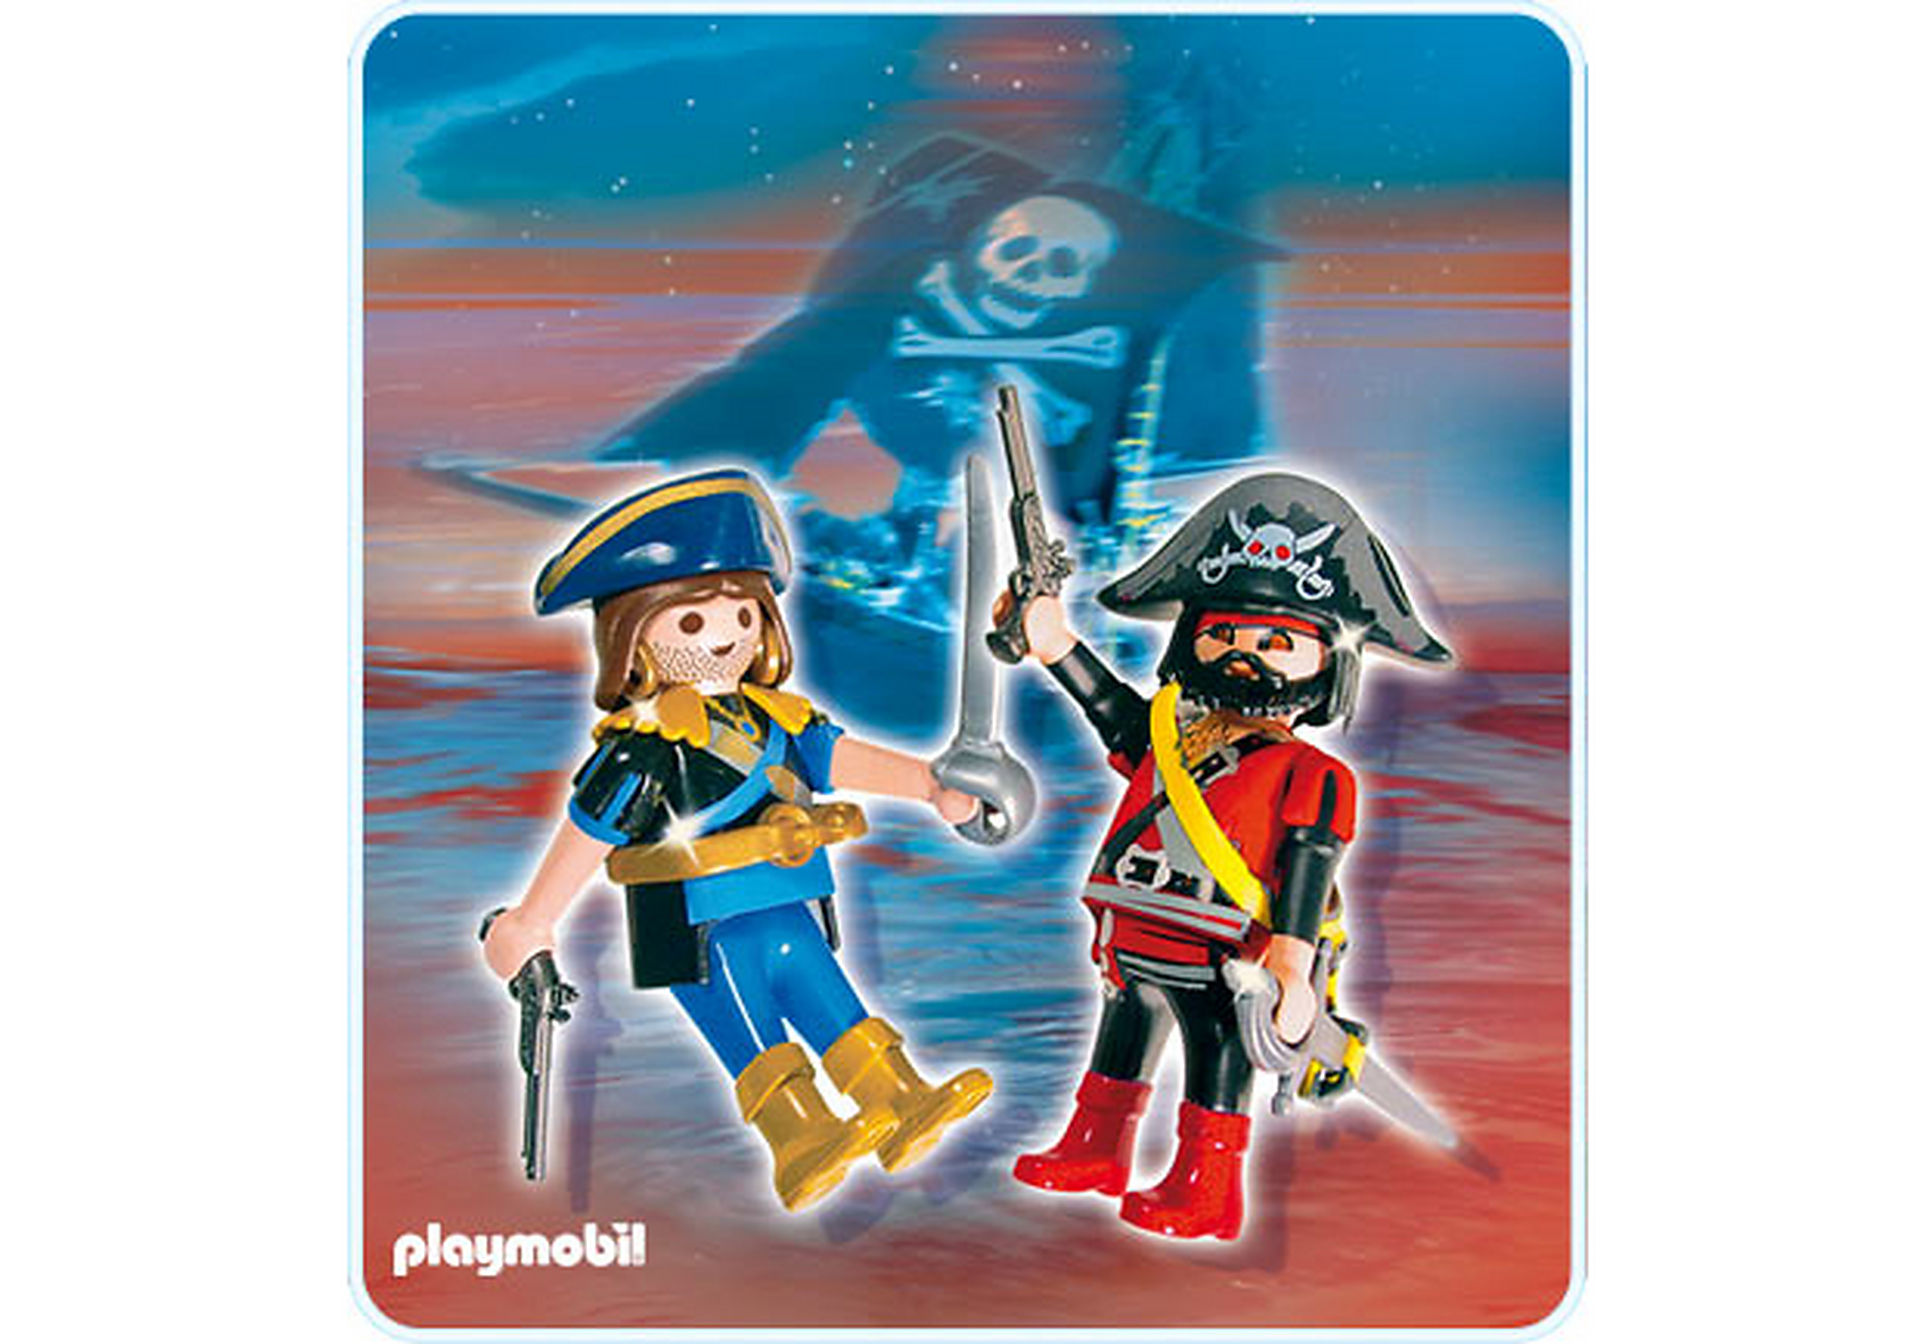 5814-A PLAYMOBIL Duo Pirate et corsaire zoom image1